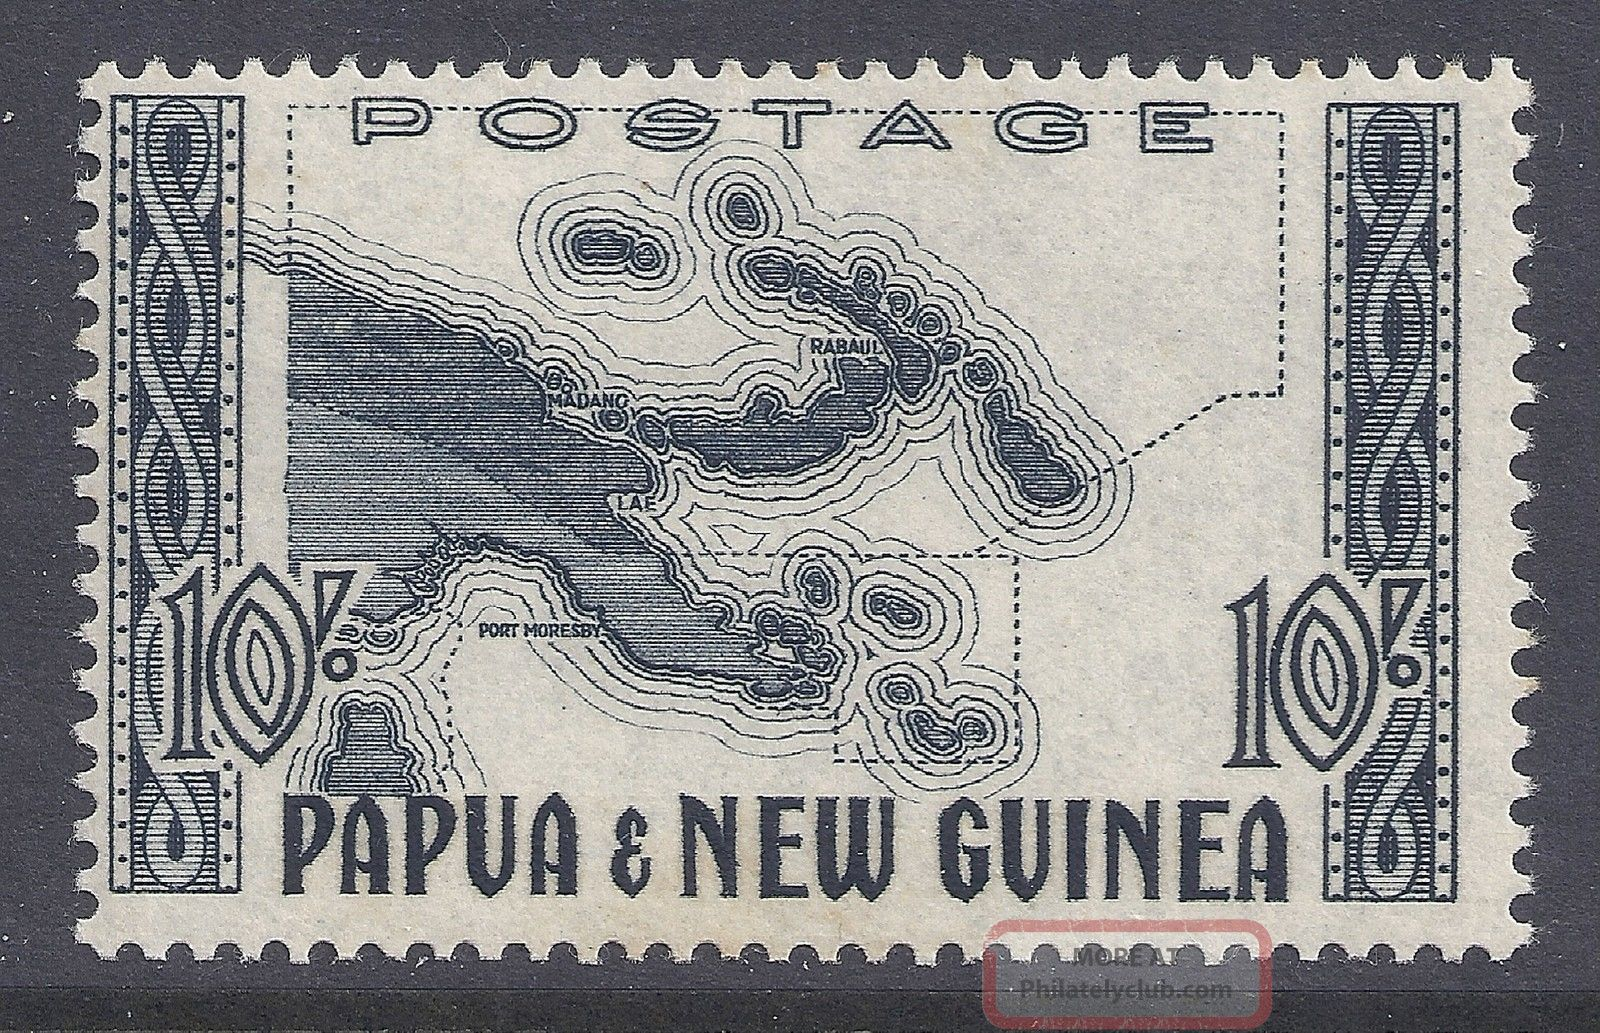 1952 Papua Guinea 10/ - Map Fine Mlh Sg14 Our Ref Nv1 Australia & Oceania photo